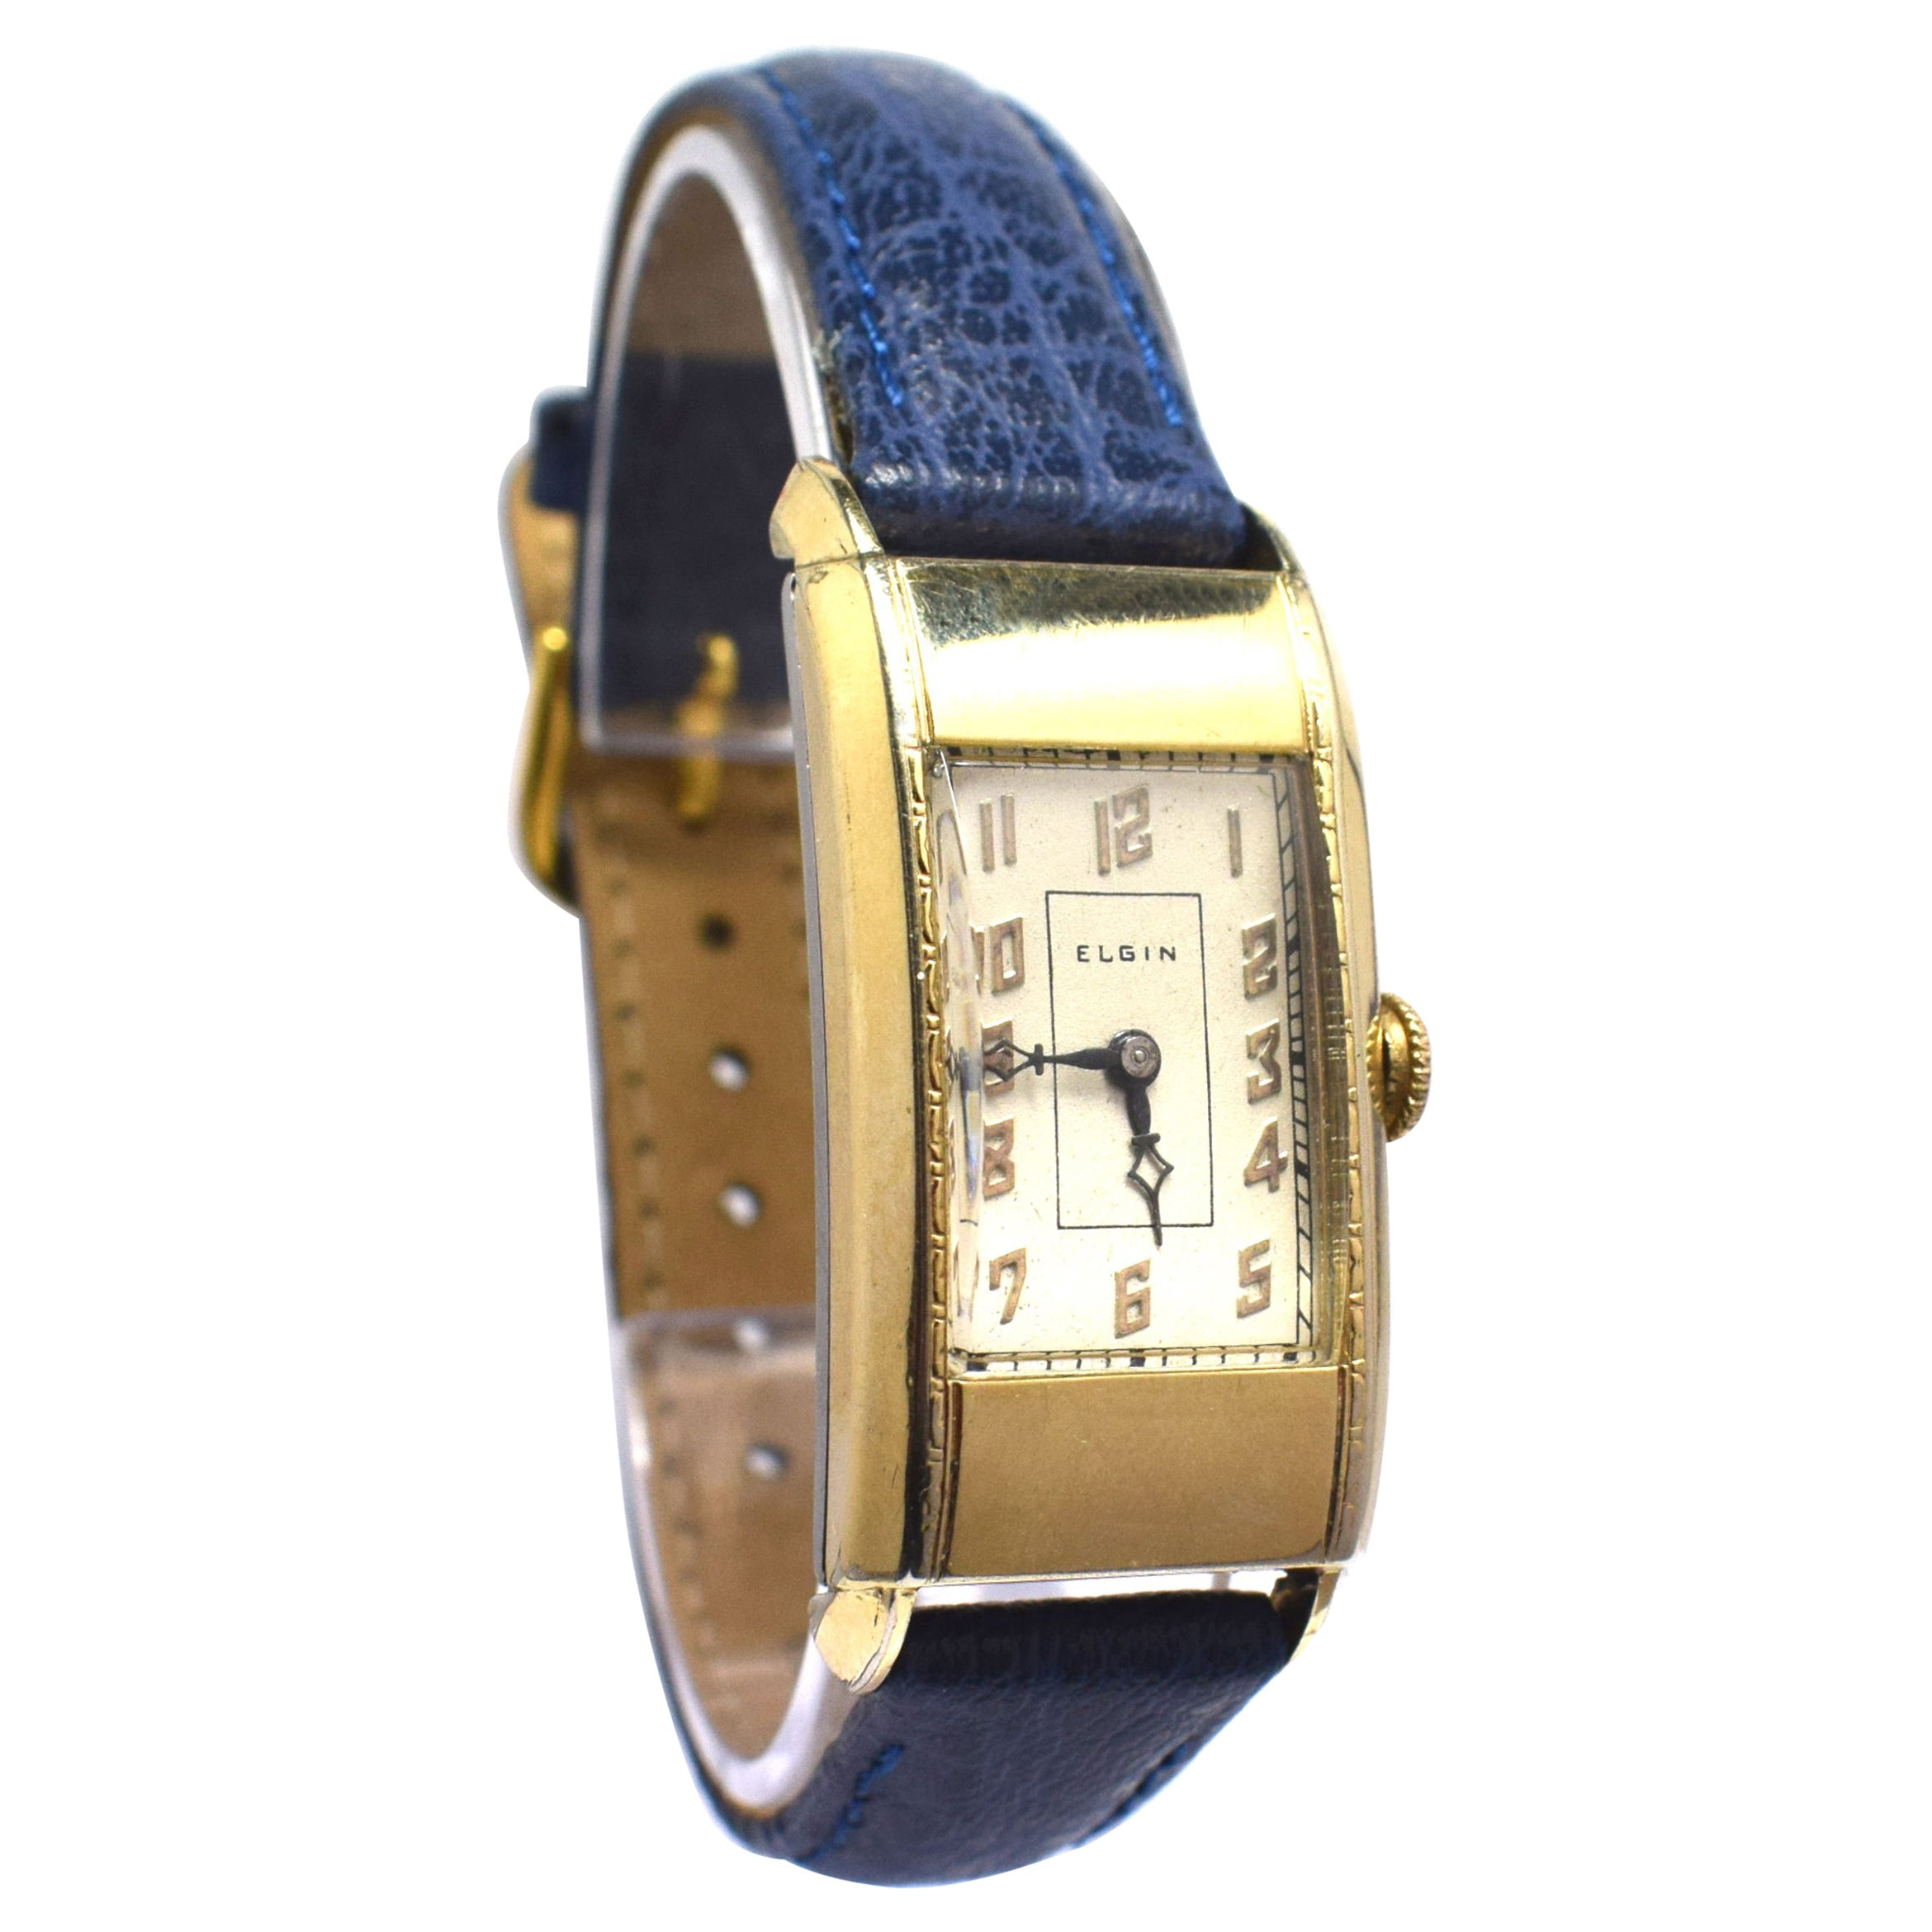 Superb Art Deco Gents Gold Plated Wrist Watch by Elgin Dated 1937